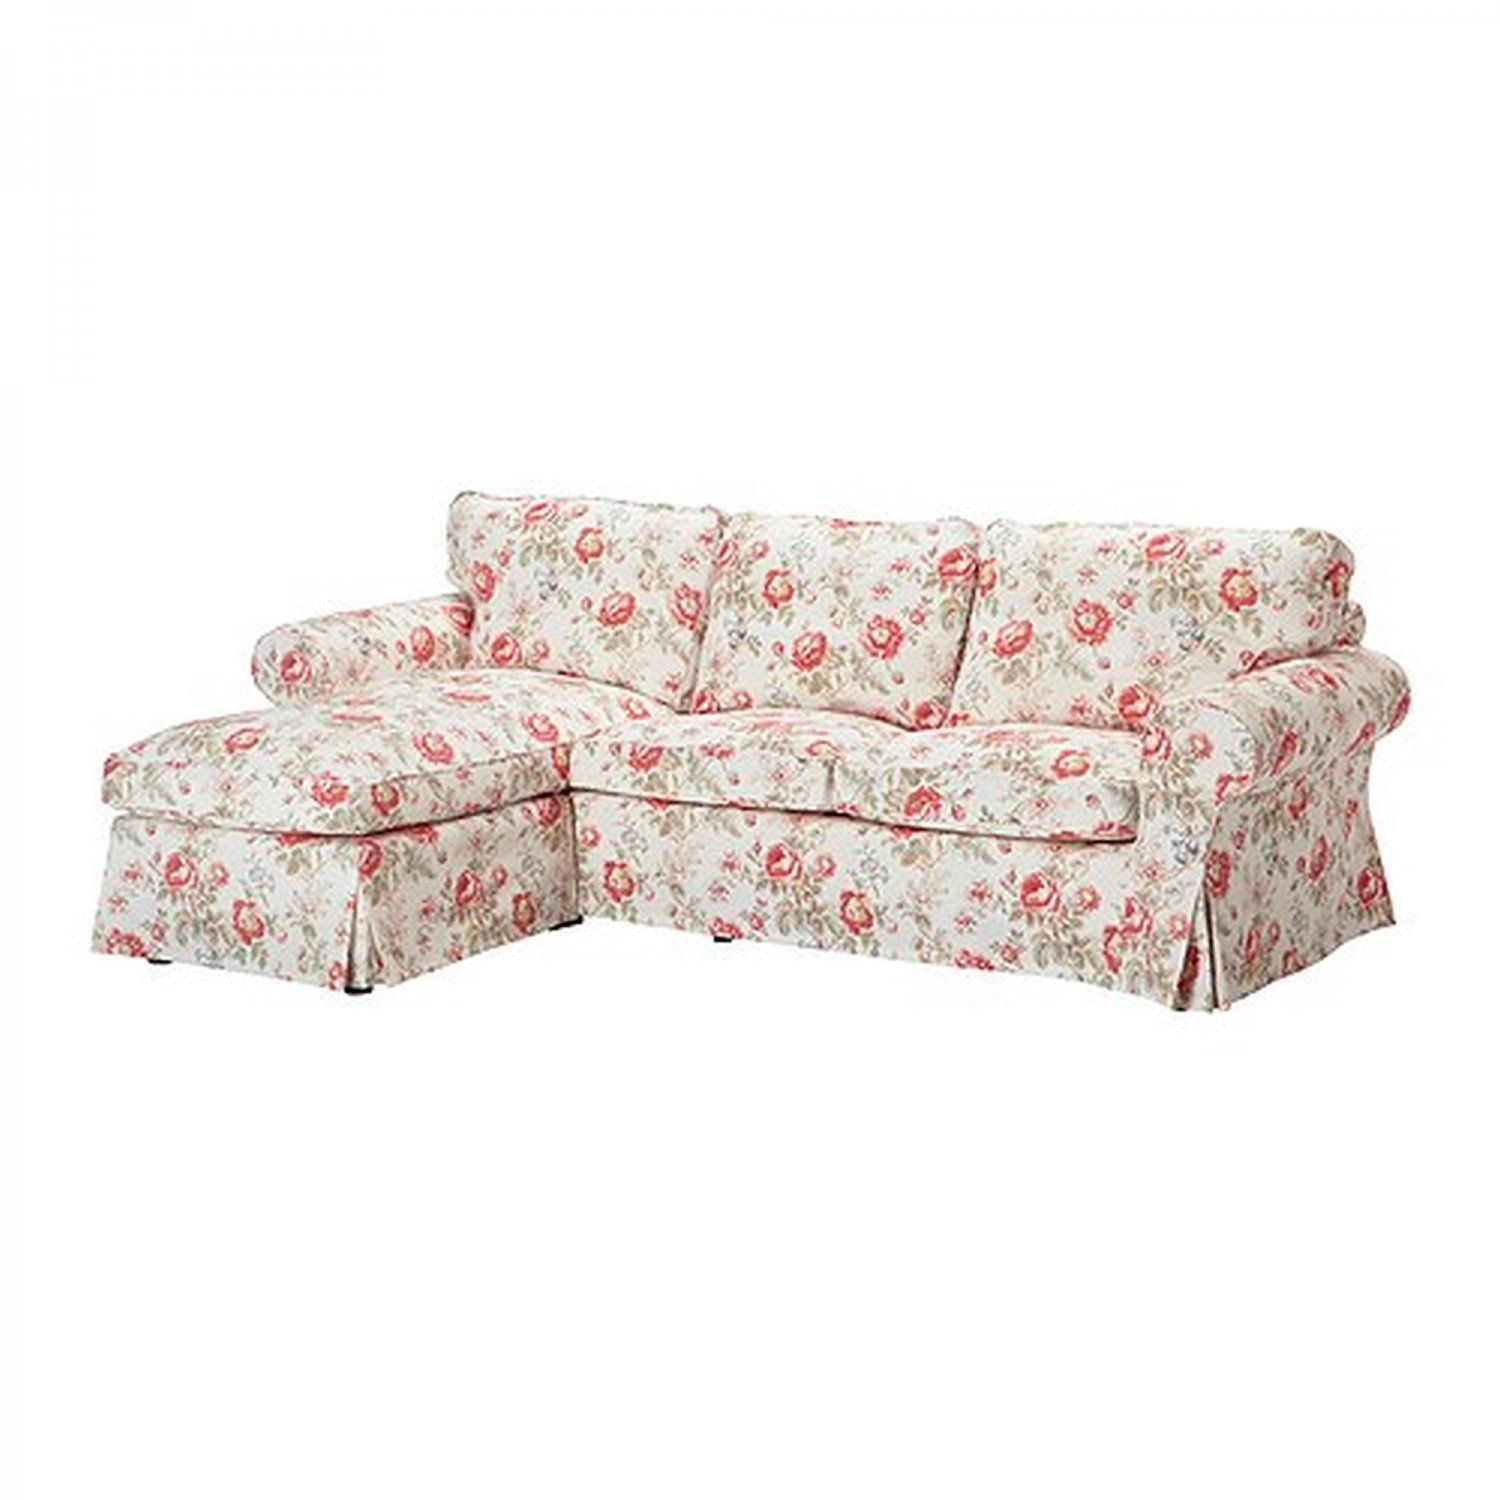 Ikea Ektorp Loveseat Sofa With Chaise Cover Slipcover Byvik Multi Floral Roses Peonies Ikea Ektorp Loveseat Sofa Ikea Ektorp Cover